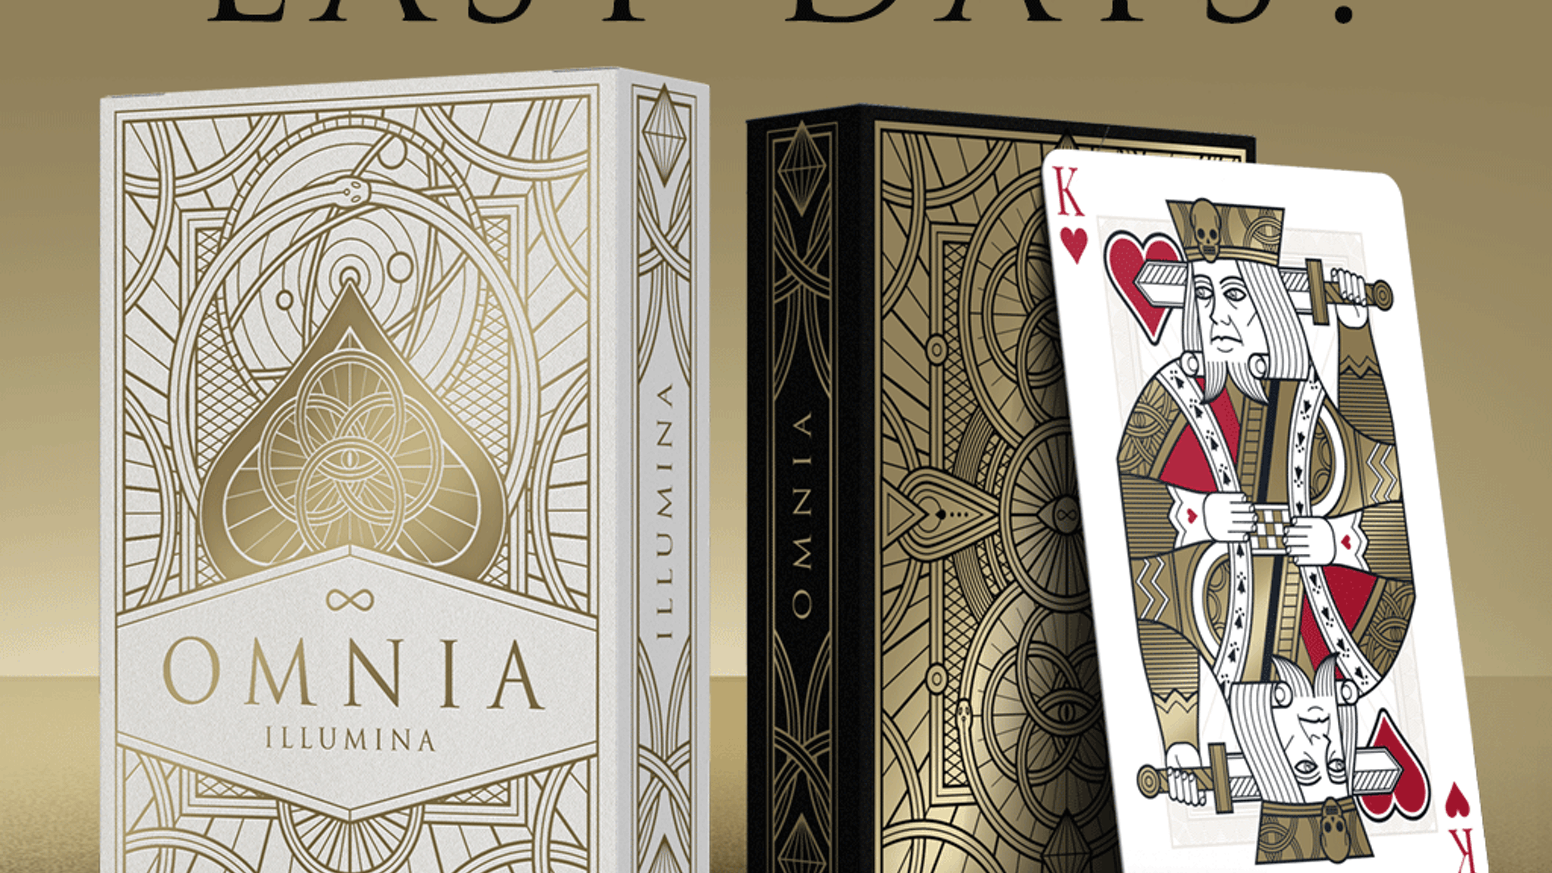 Custom poker size playing cards. Inspired by ancient symbology, drawn with a sharp and modern style. Printed by Expert Playing Card Co.